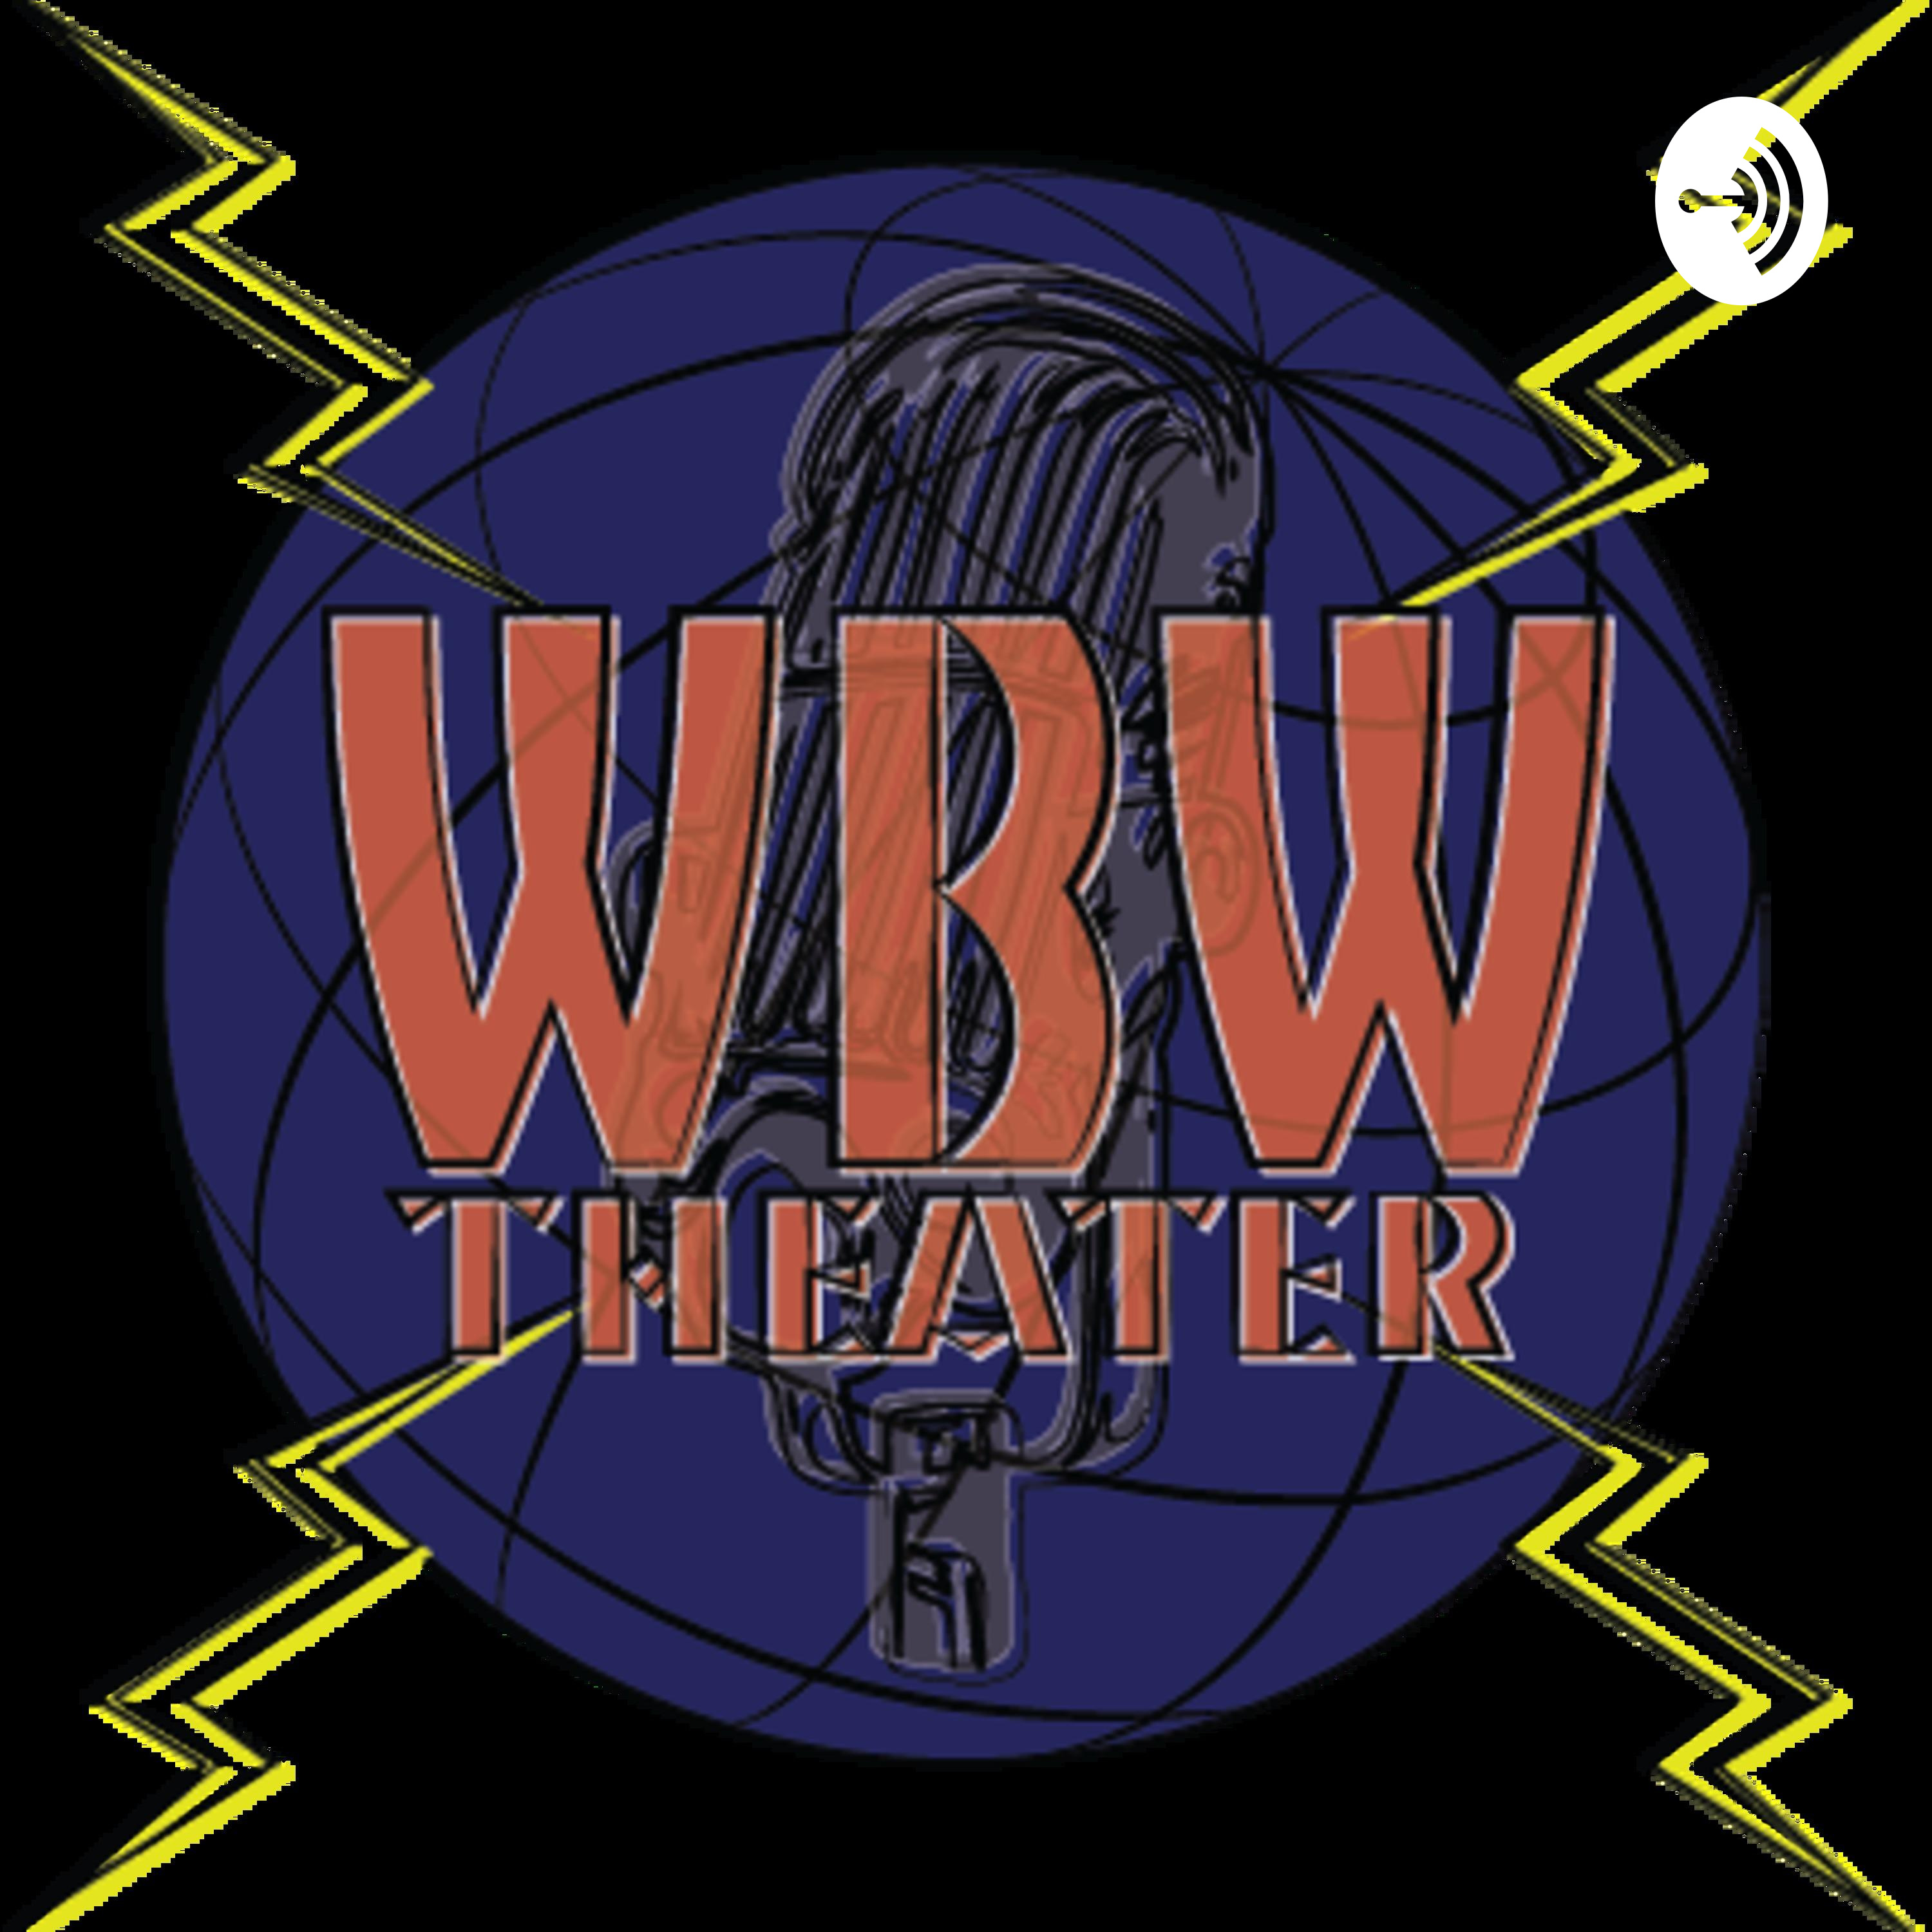 WBW Theater | Listen Free on Castbox